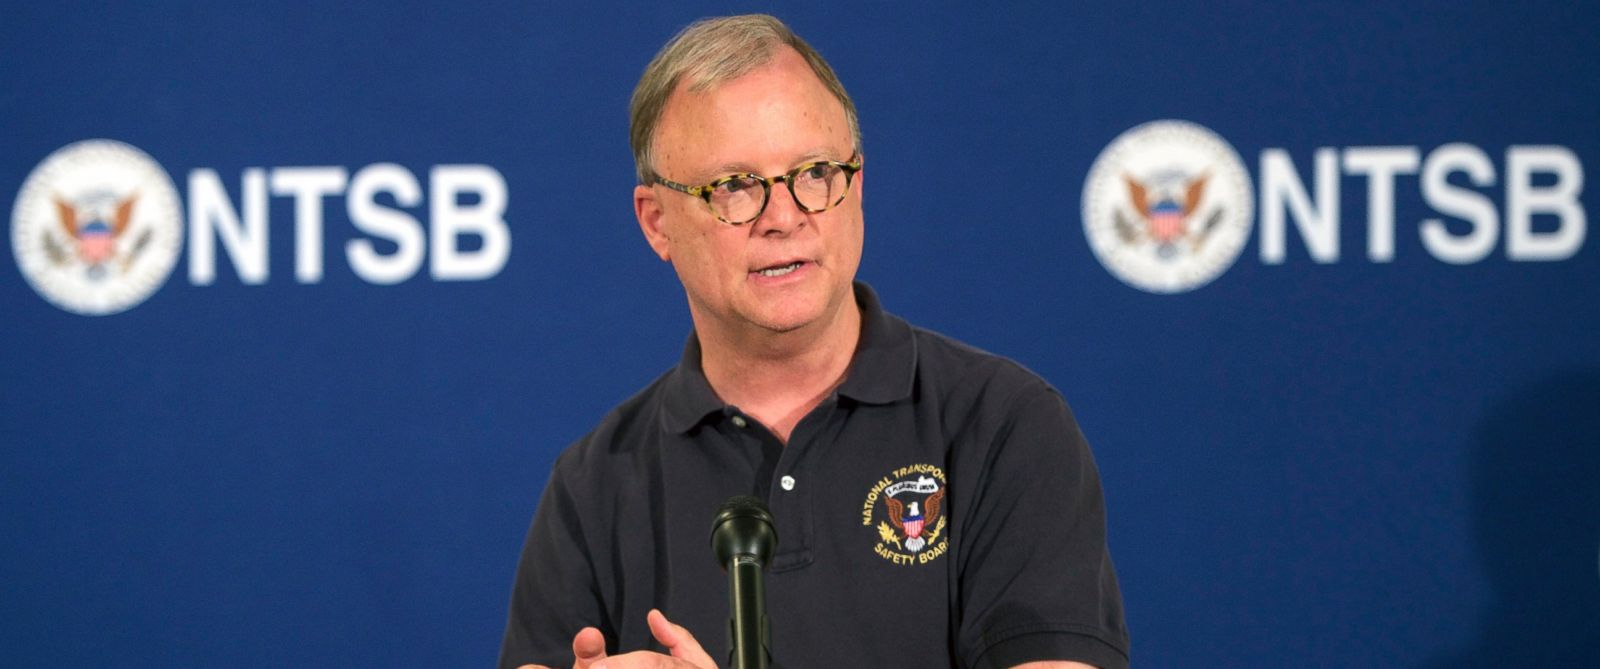 PHOTO: National Transportation Safety Board (NTSB) spokesperson Robert Sumwalt holds the final media briefing about this weeks Amtrak passenger train derailment at the Sheraton Philadelphia Society Hill Hotel, May 15, 2015, in Philadelphia.